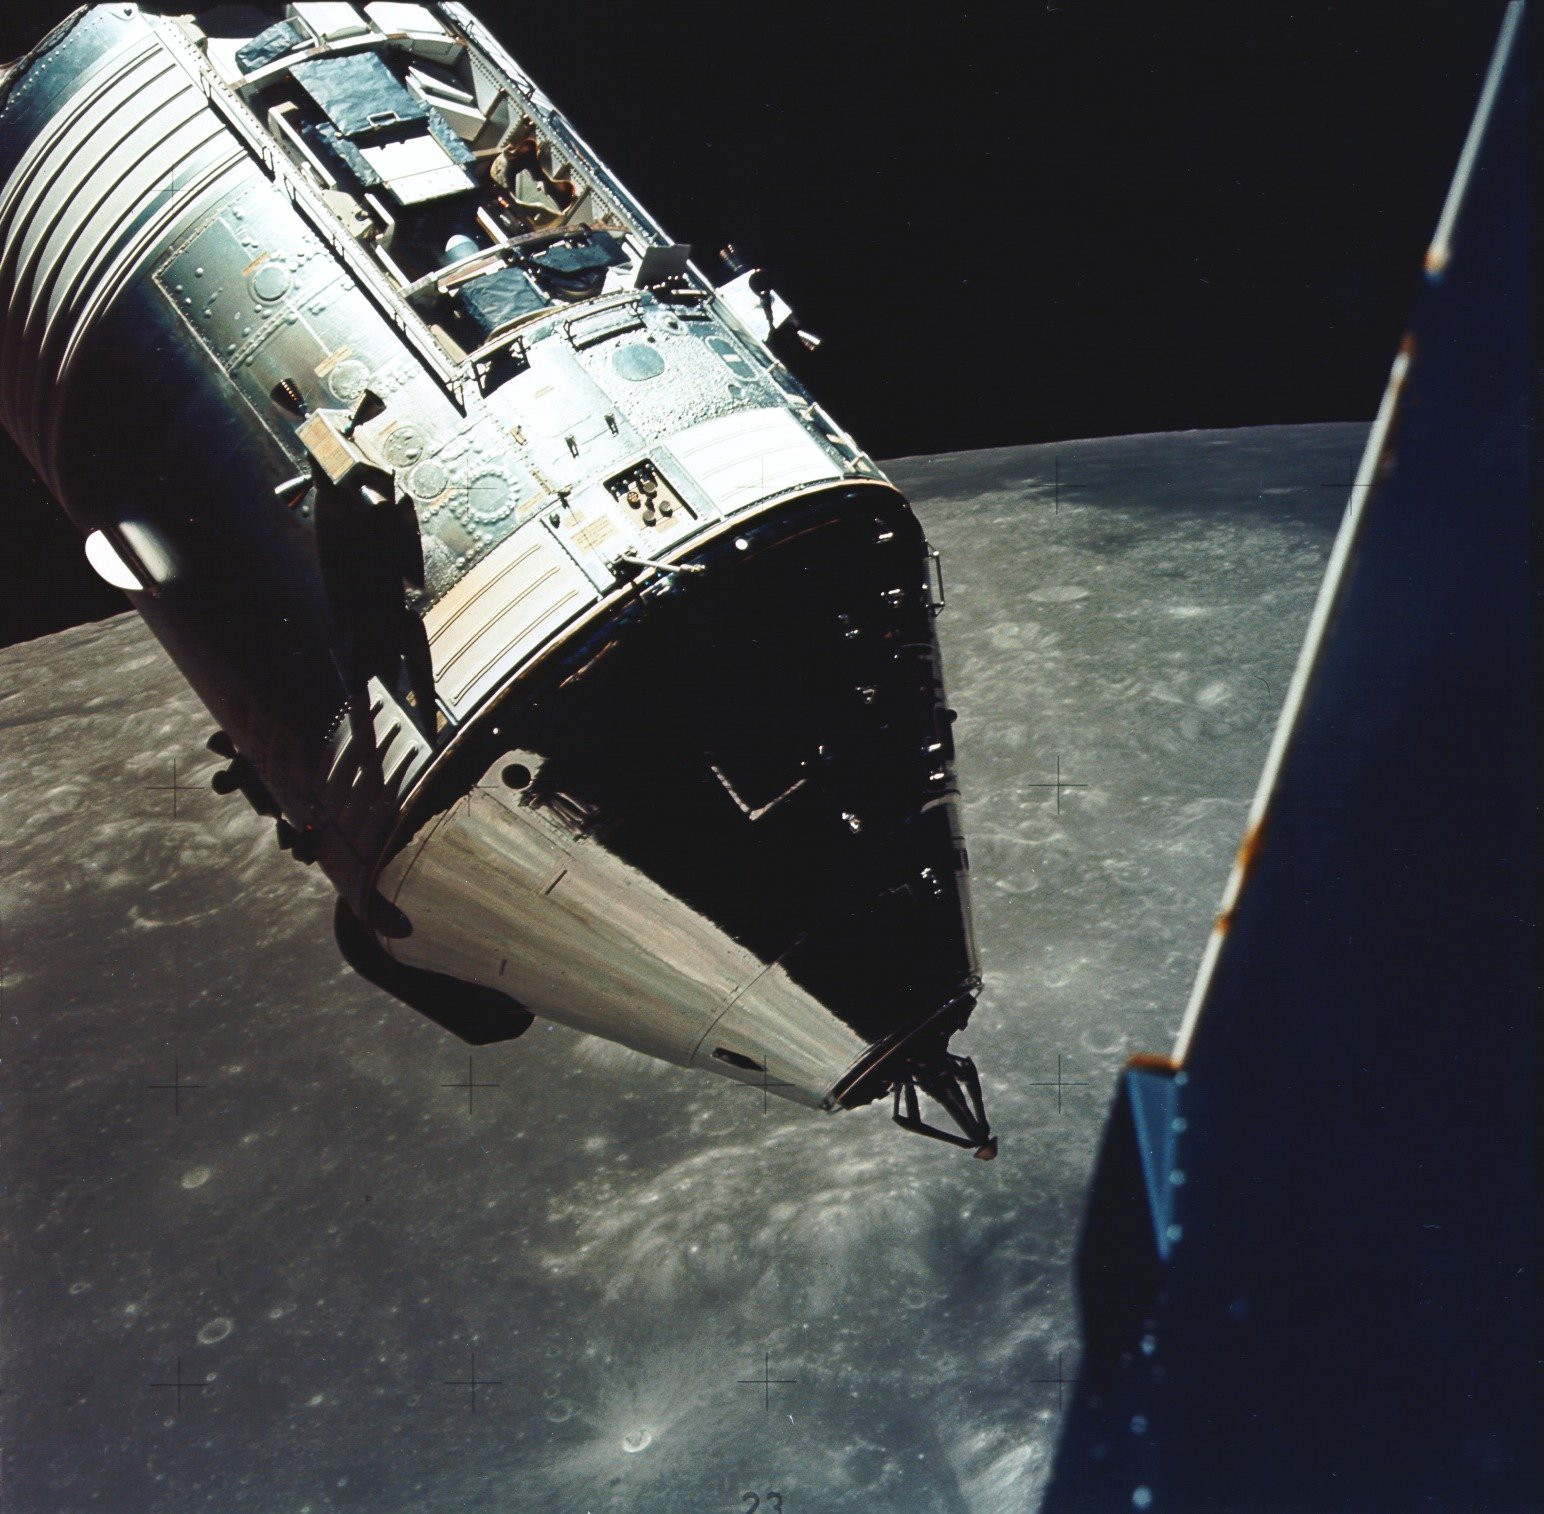 apollo 5 spacecraft - photo #45